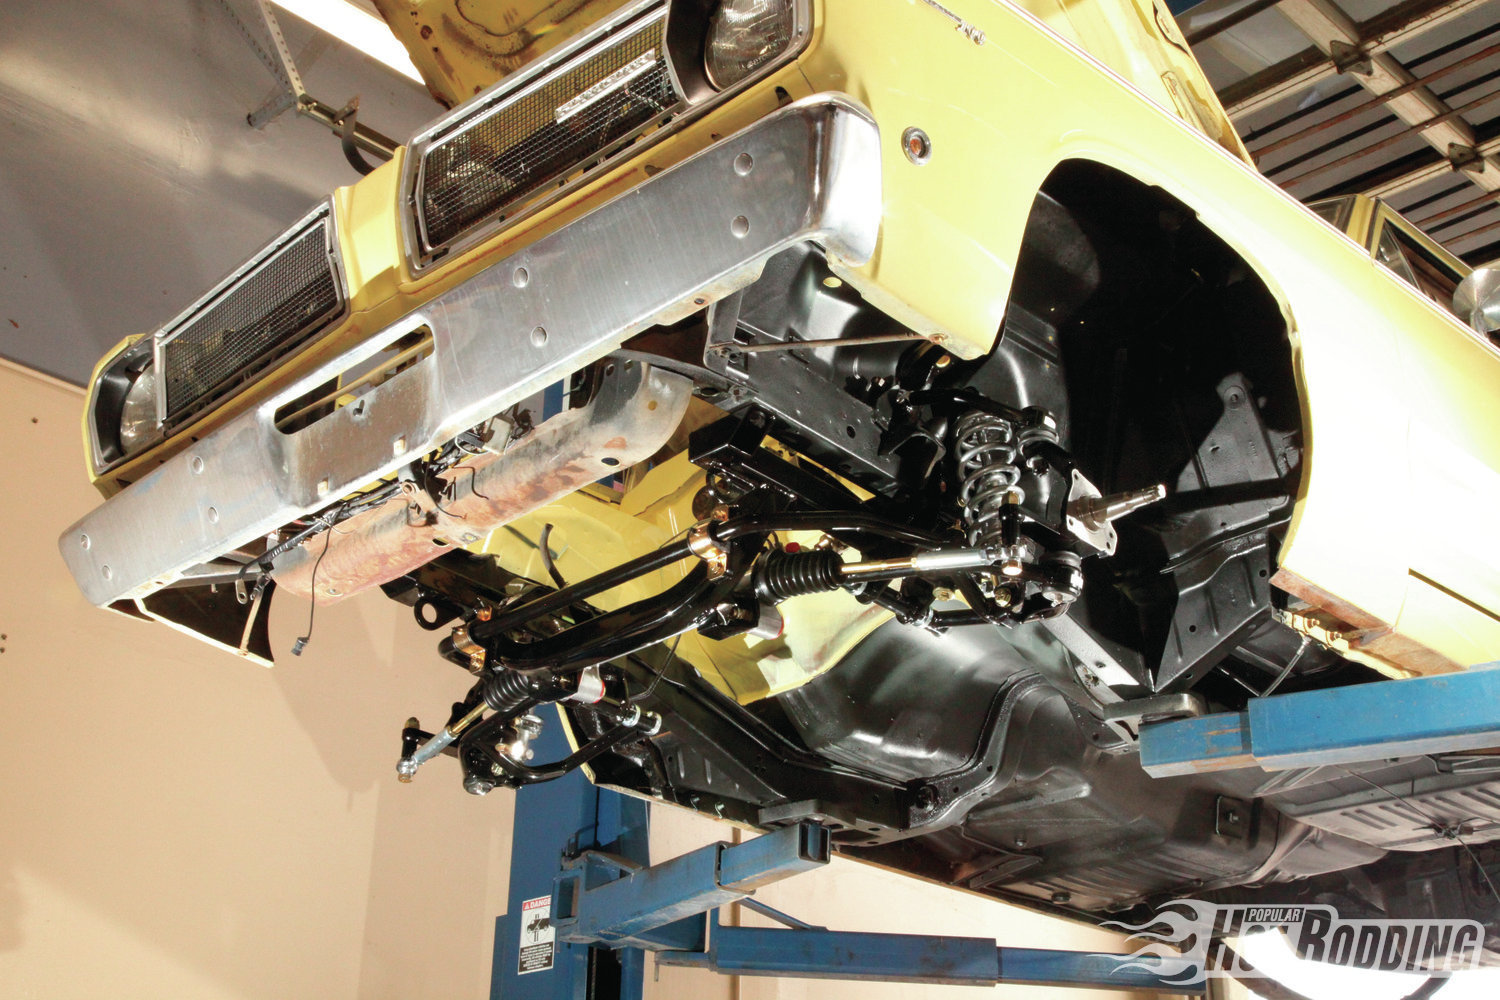 1. The RMS AlterKtion K-member for Mopars is transformative. Weight over the nose is reduced by 75-120 pounds, handling geometry is improved, and steering response is tightened with the included AGR rack-and-pinion conversion. RMS makes the AlterKtion for Mopar A-, B-, and E-Bodies, and for every Mopar engine family, including small-block LA/Magnum, R/RB big-block wedge, Gen II Hemi, and Gen III Hemi.